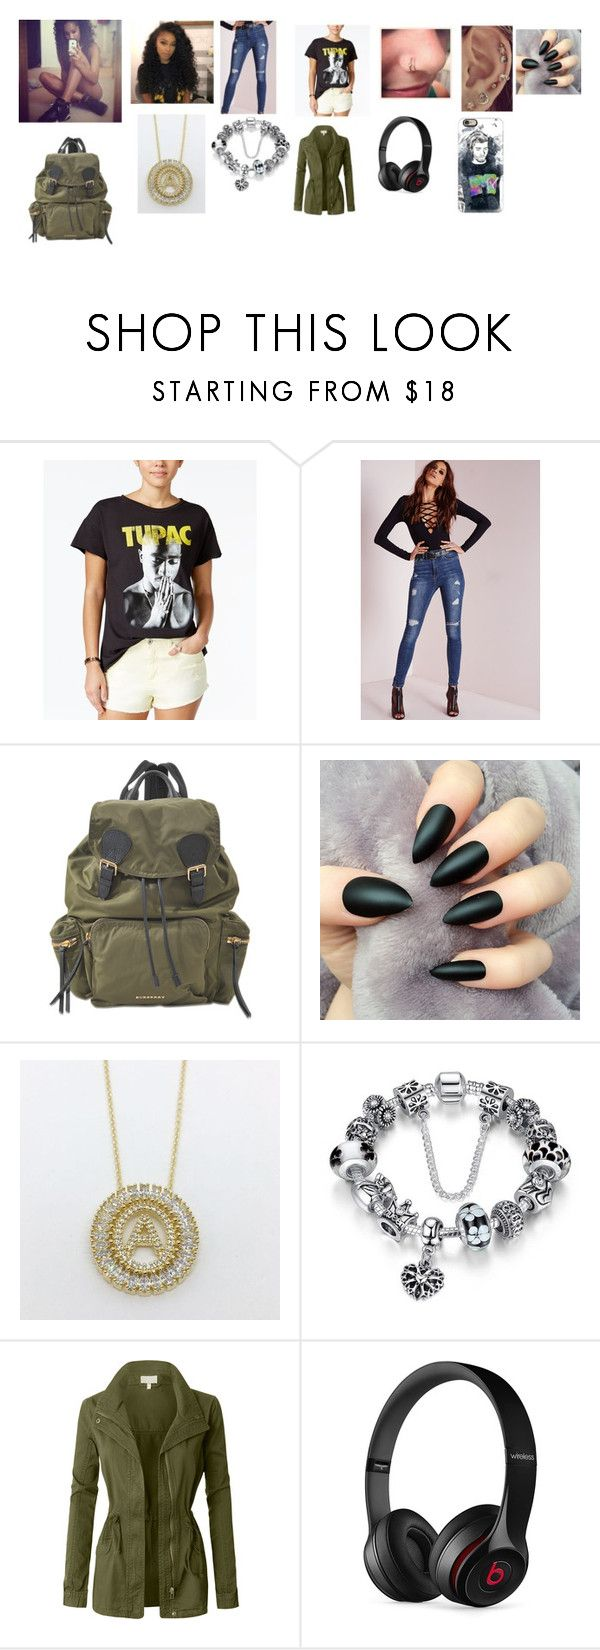 """""""Janet jackson and Tupac Shakur's daughter"""" by scarletslytherin123 on Polyvore featuring NTD, Missguided, Burberry, LE3NO, Beats by Dr. Dre and Casetify"""